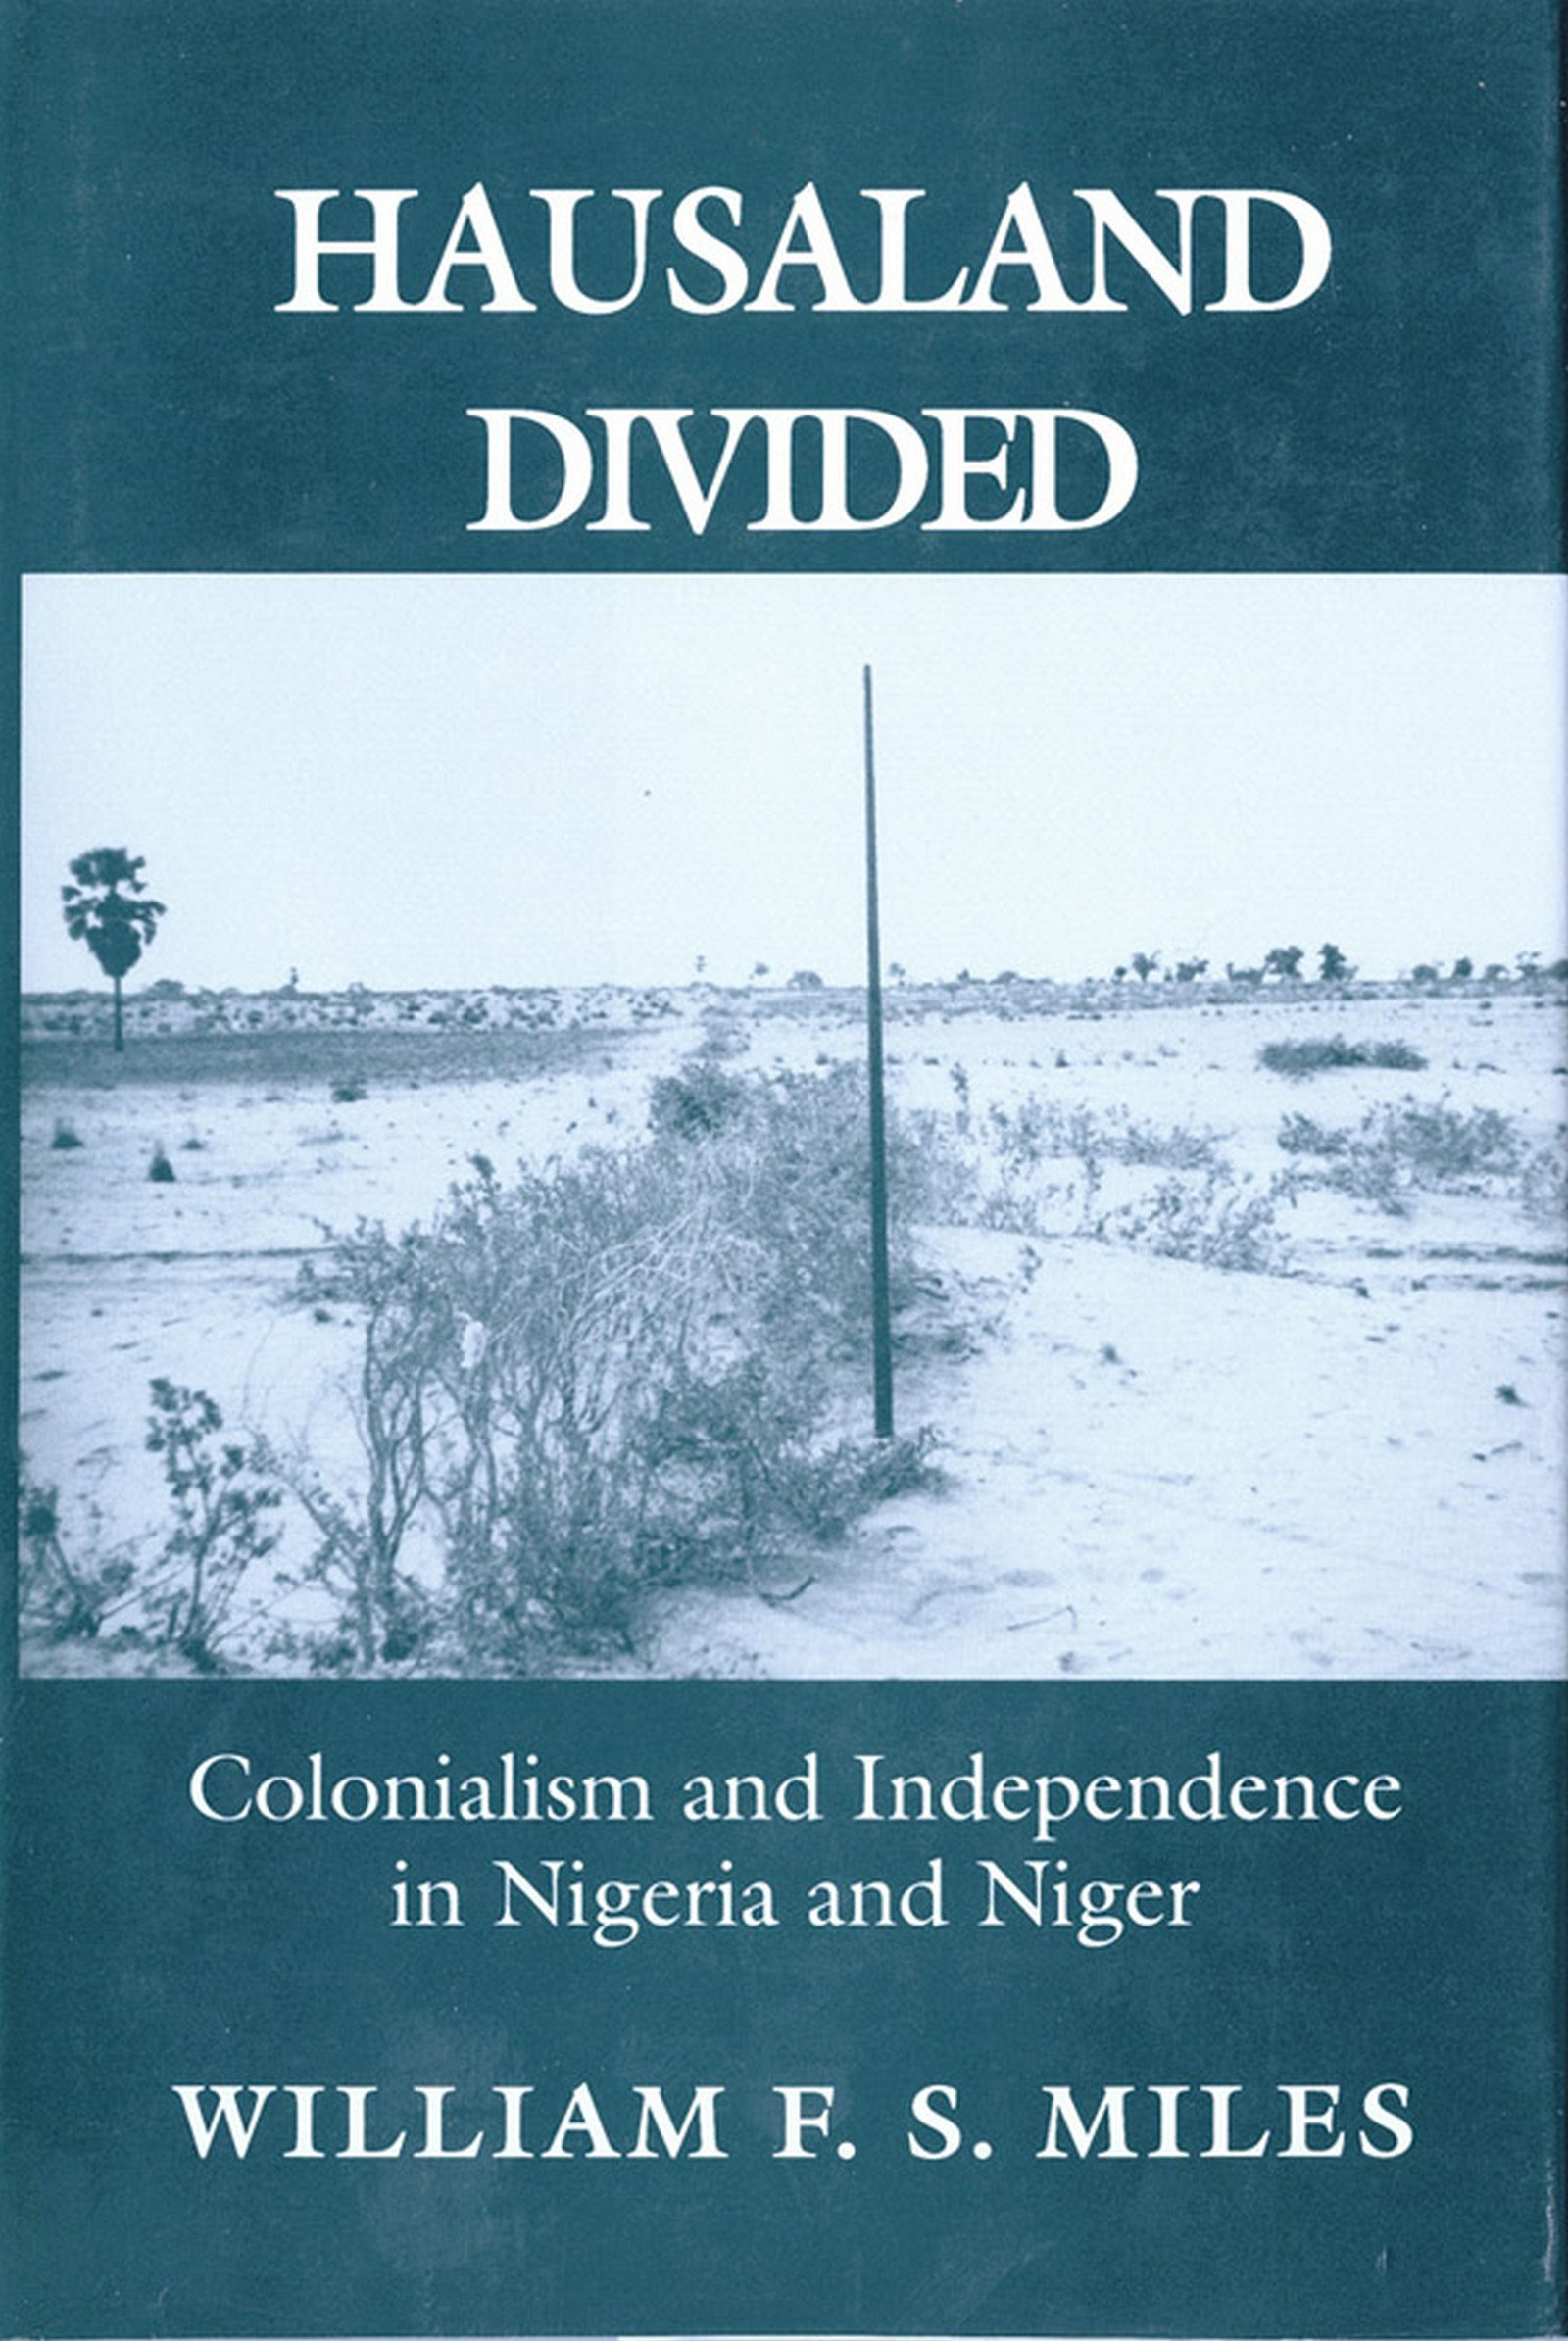 Hausaland Divided: Colonialism and Independence